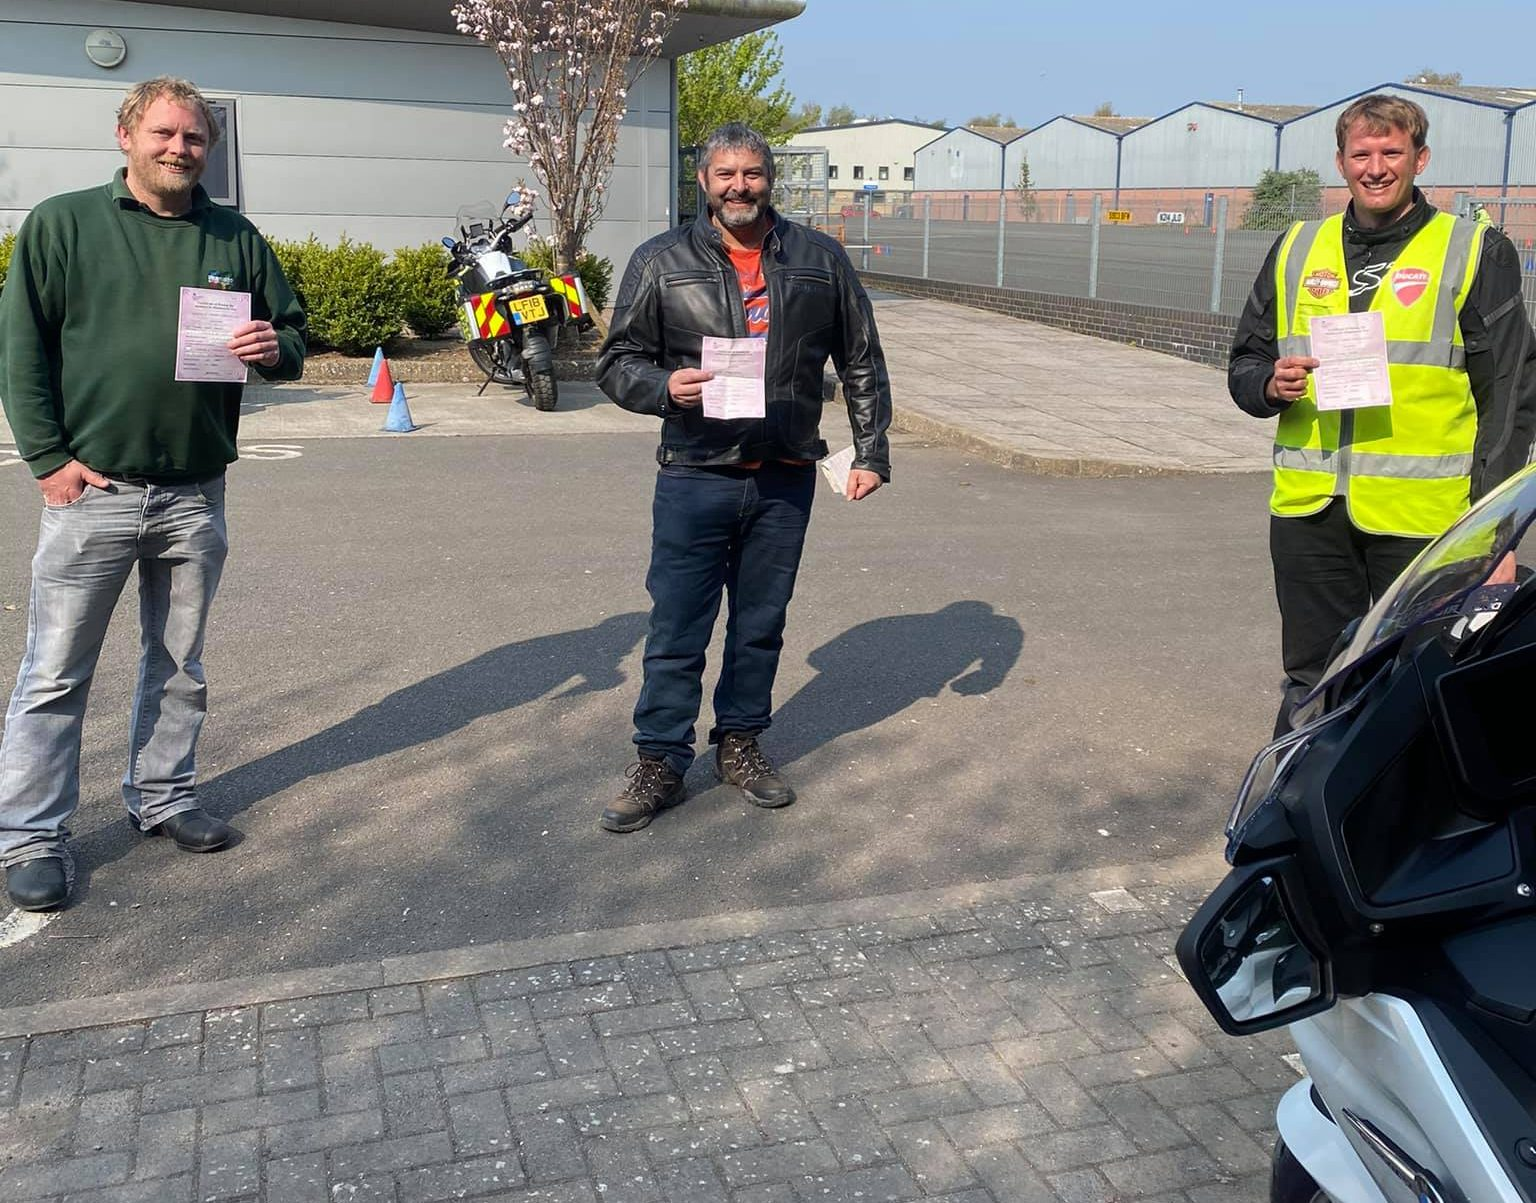 somerset riders happy after motorbike test passed